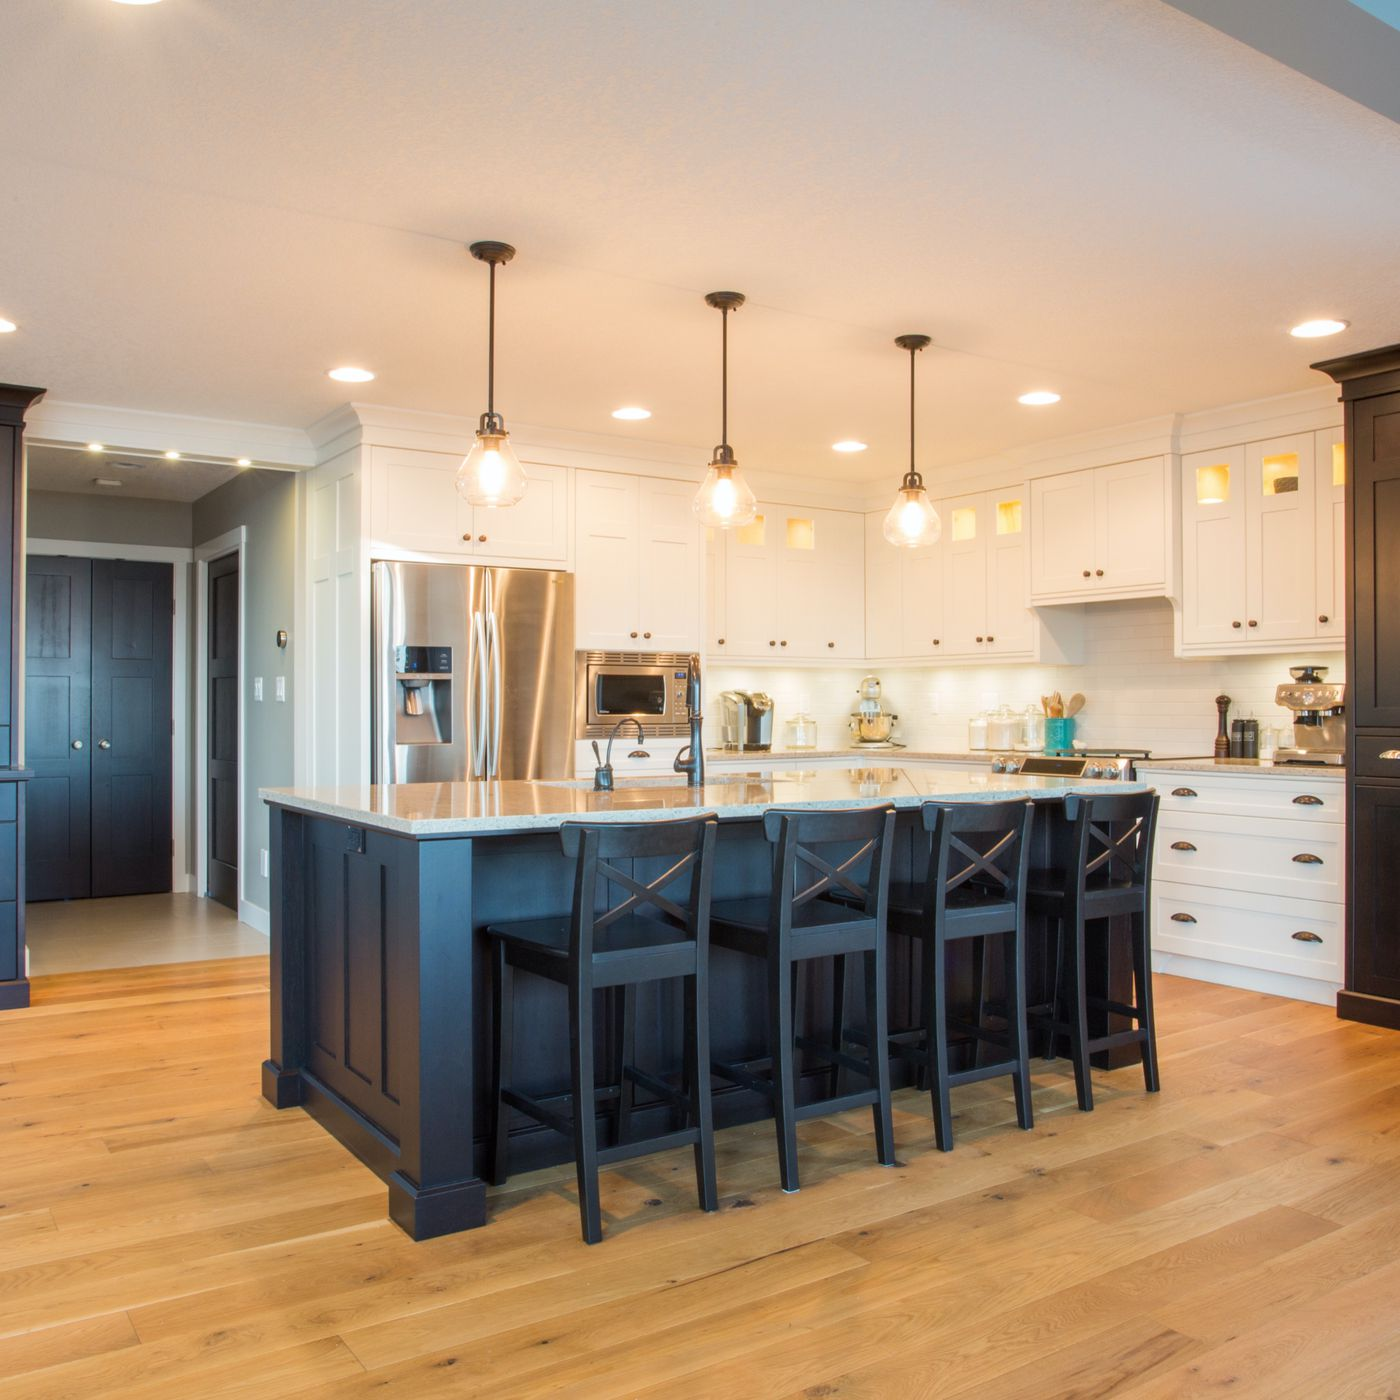 Best Flooring for Kitchens   This Old House